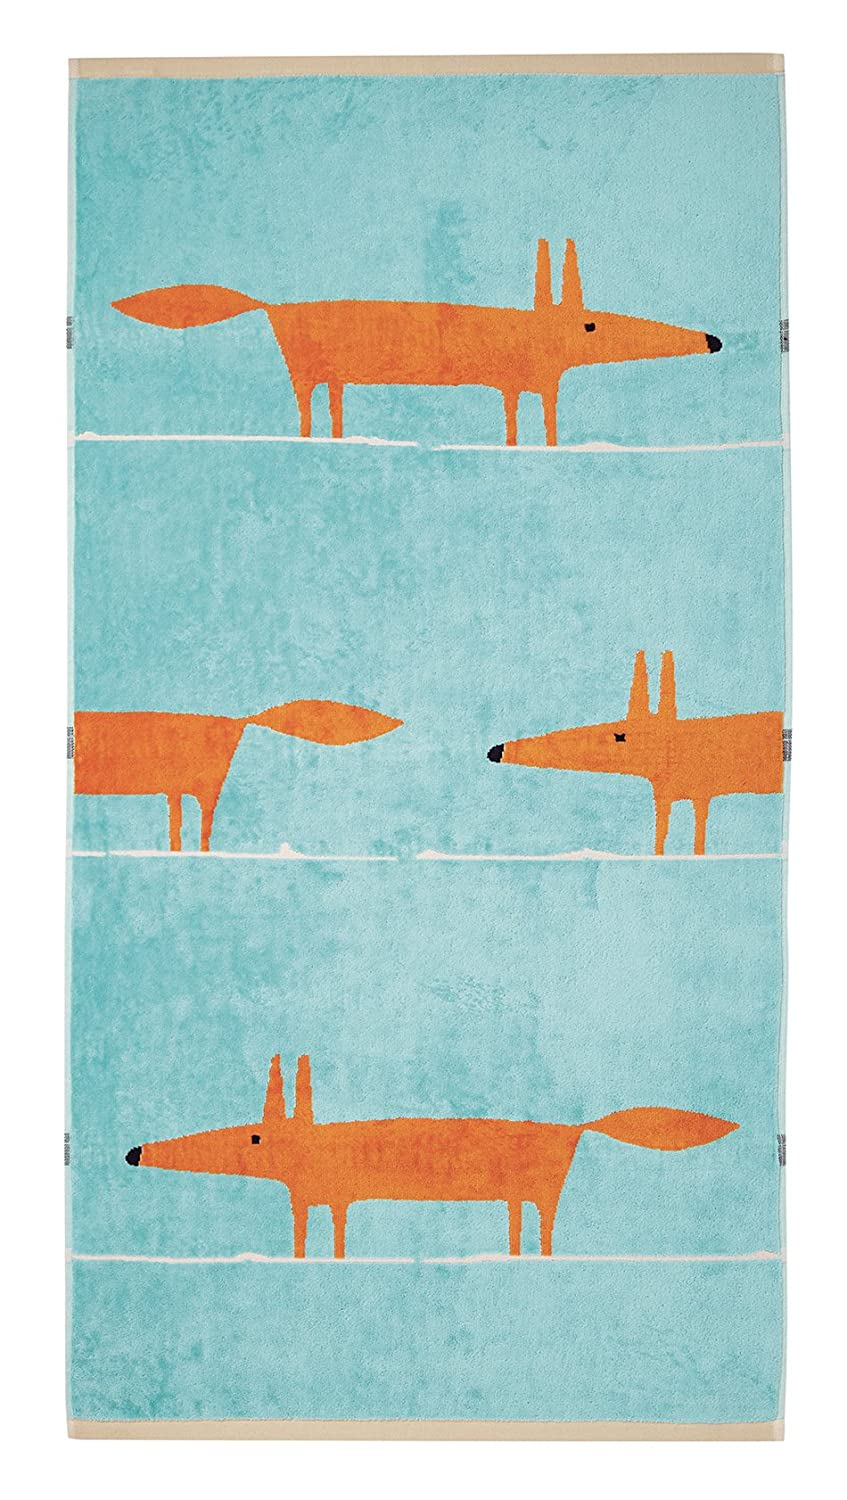 Scion MR Fox Aqua, Bath Sheet, Cotton, 90 x 150 x 0.2 cm Bedeck TWLMRFQ4AQU